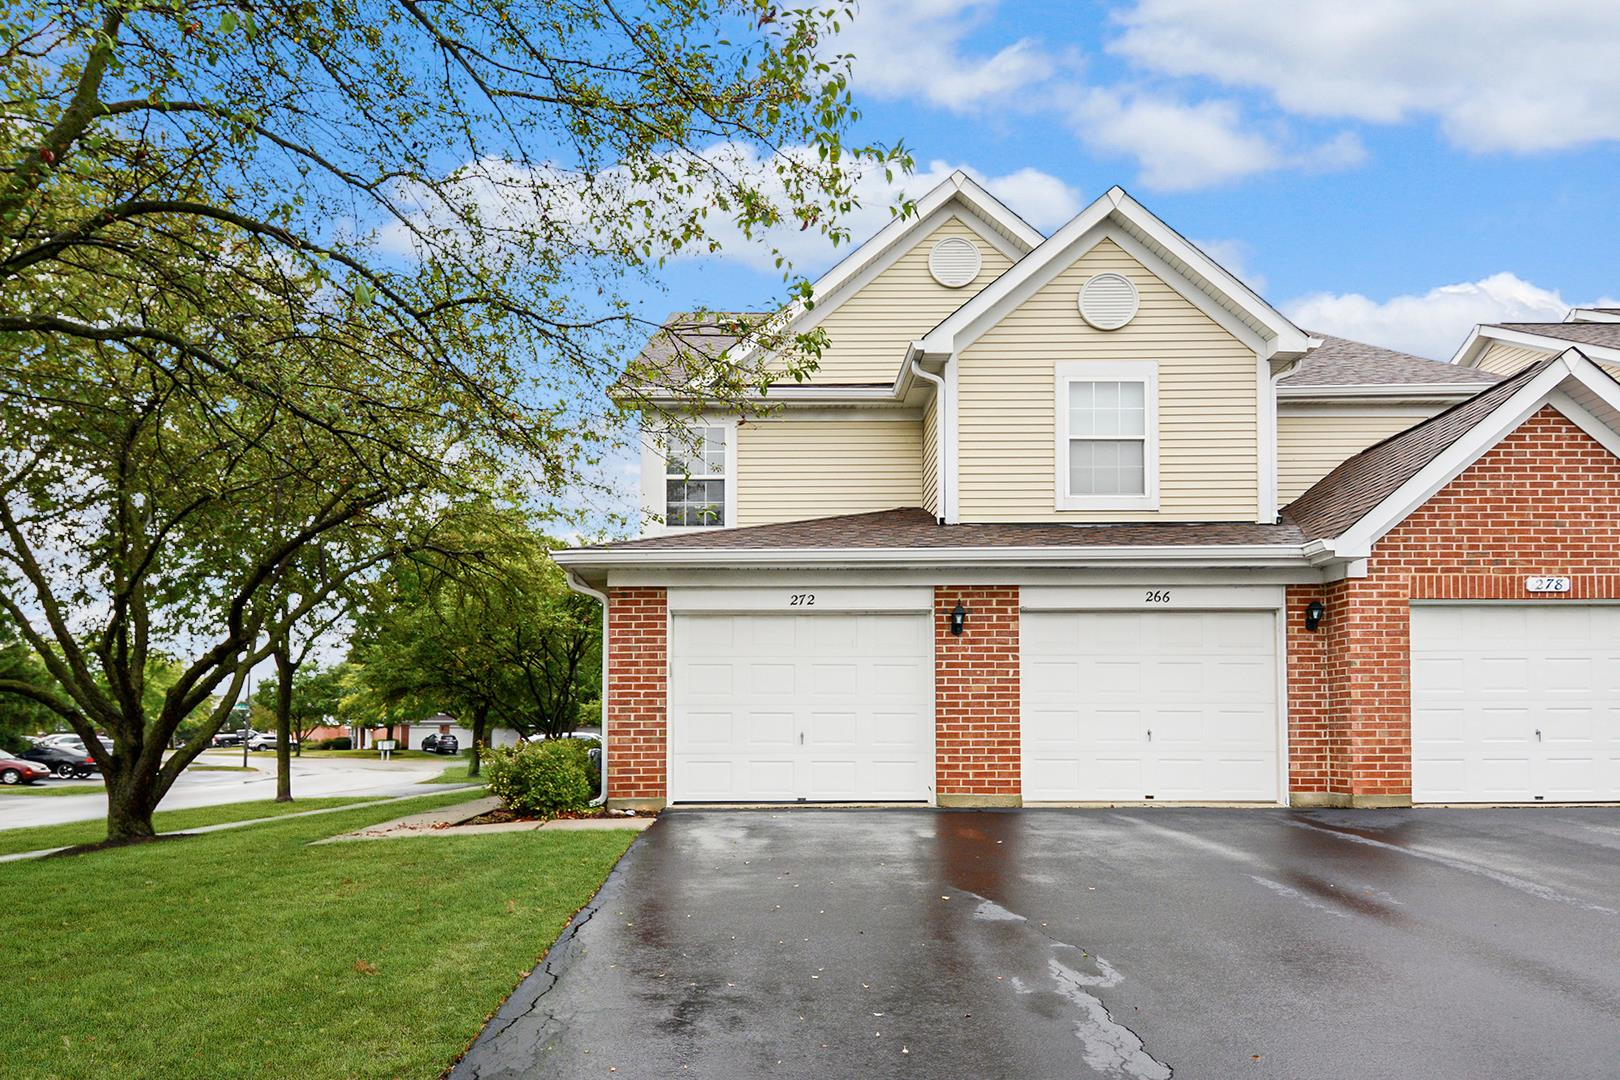 272 Ashbury Lane E, Roselle, IL 60172 - #: 10850095